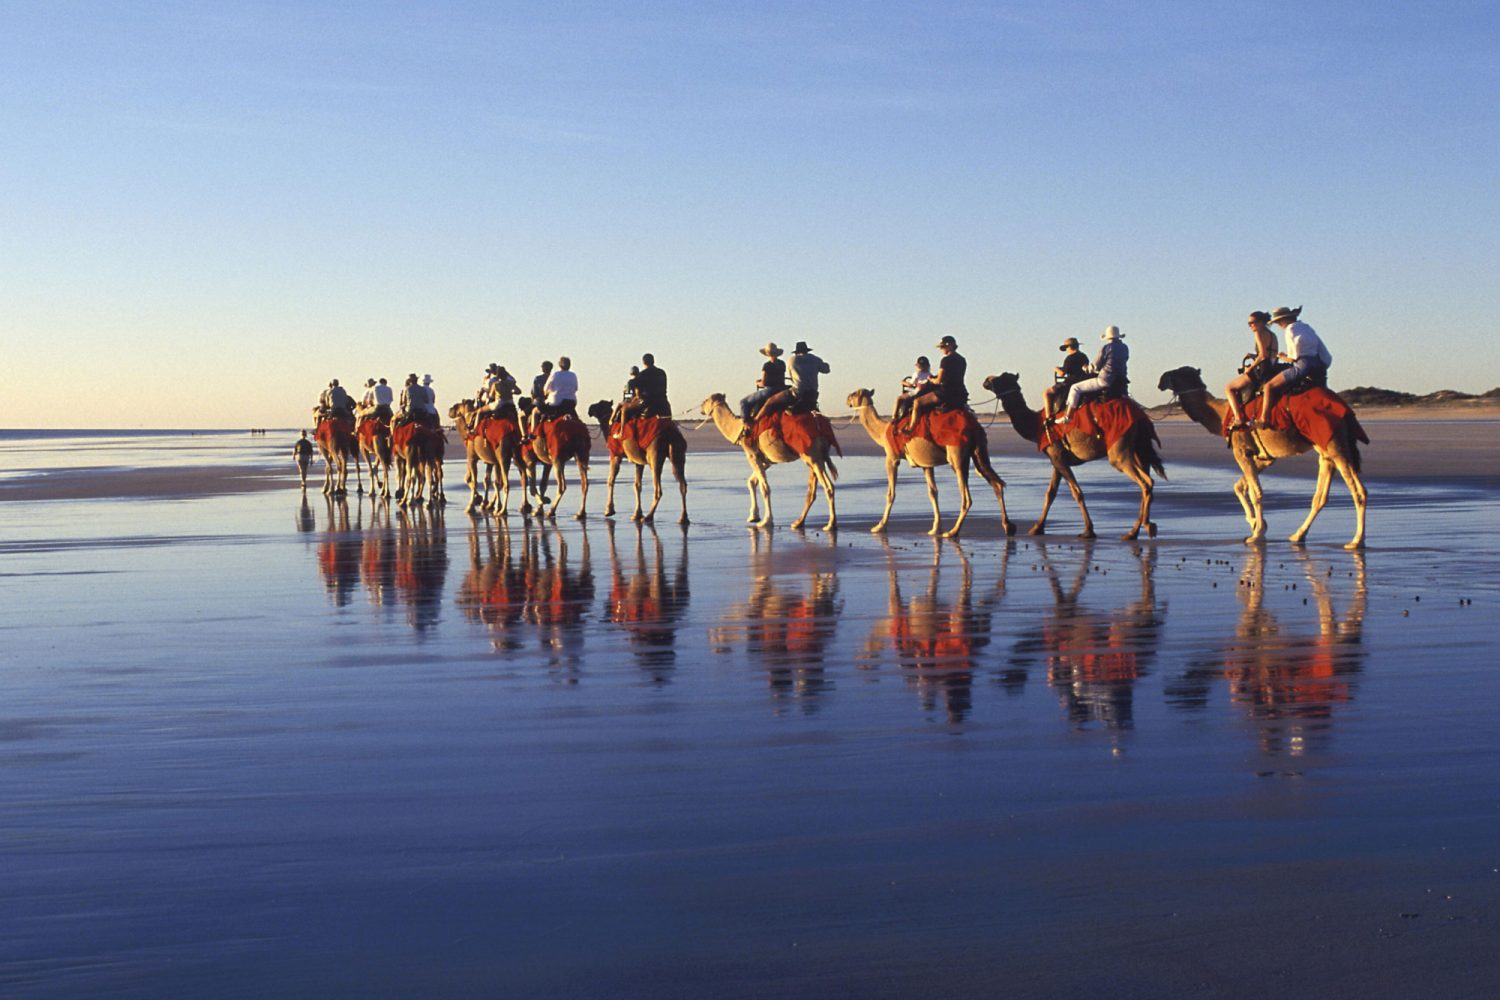 Broome: Kamelreiten am Cable Beach